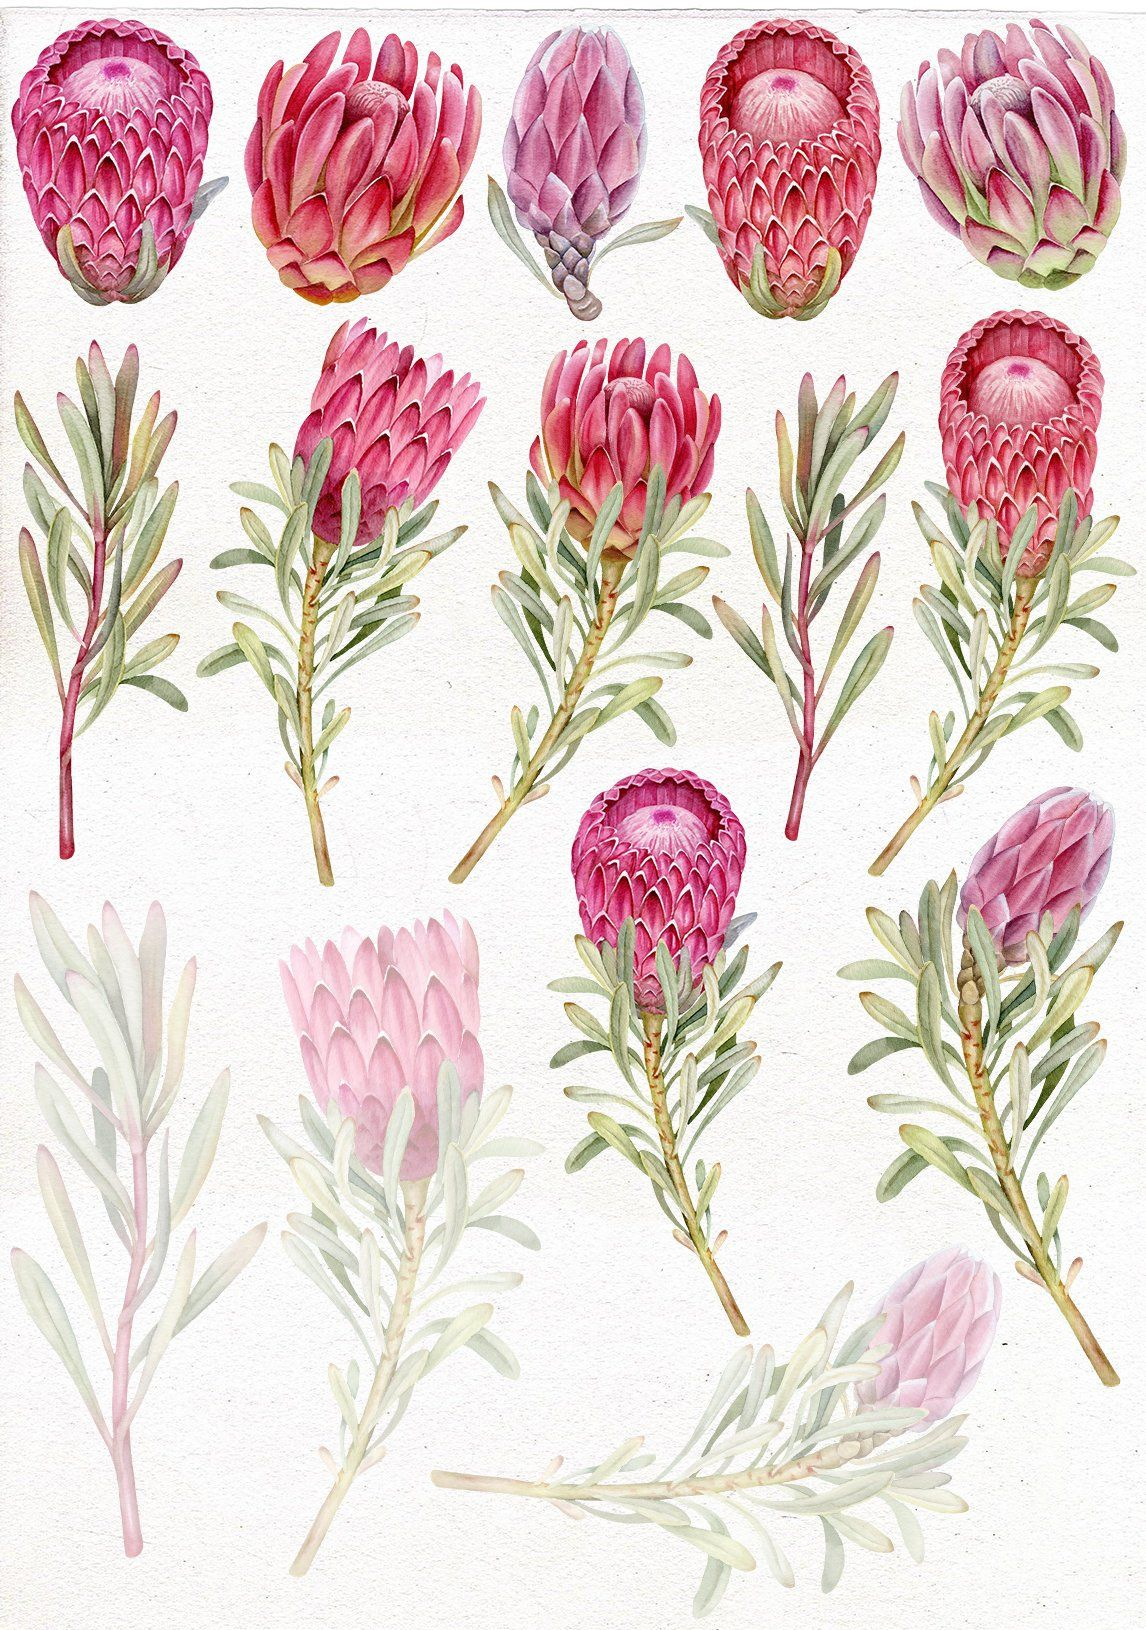 Wedding Watercolor Protea Clip Art Pink Tropical Flowers Png Etsy In 2020 Protea Art Flower Art Flower Drawing